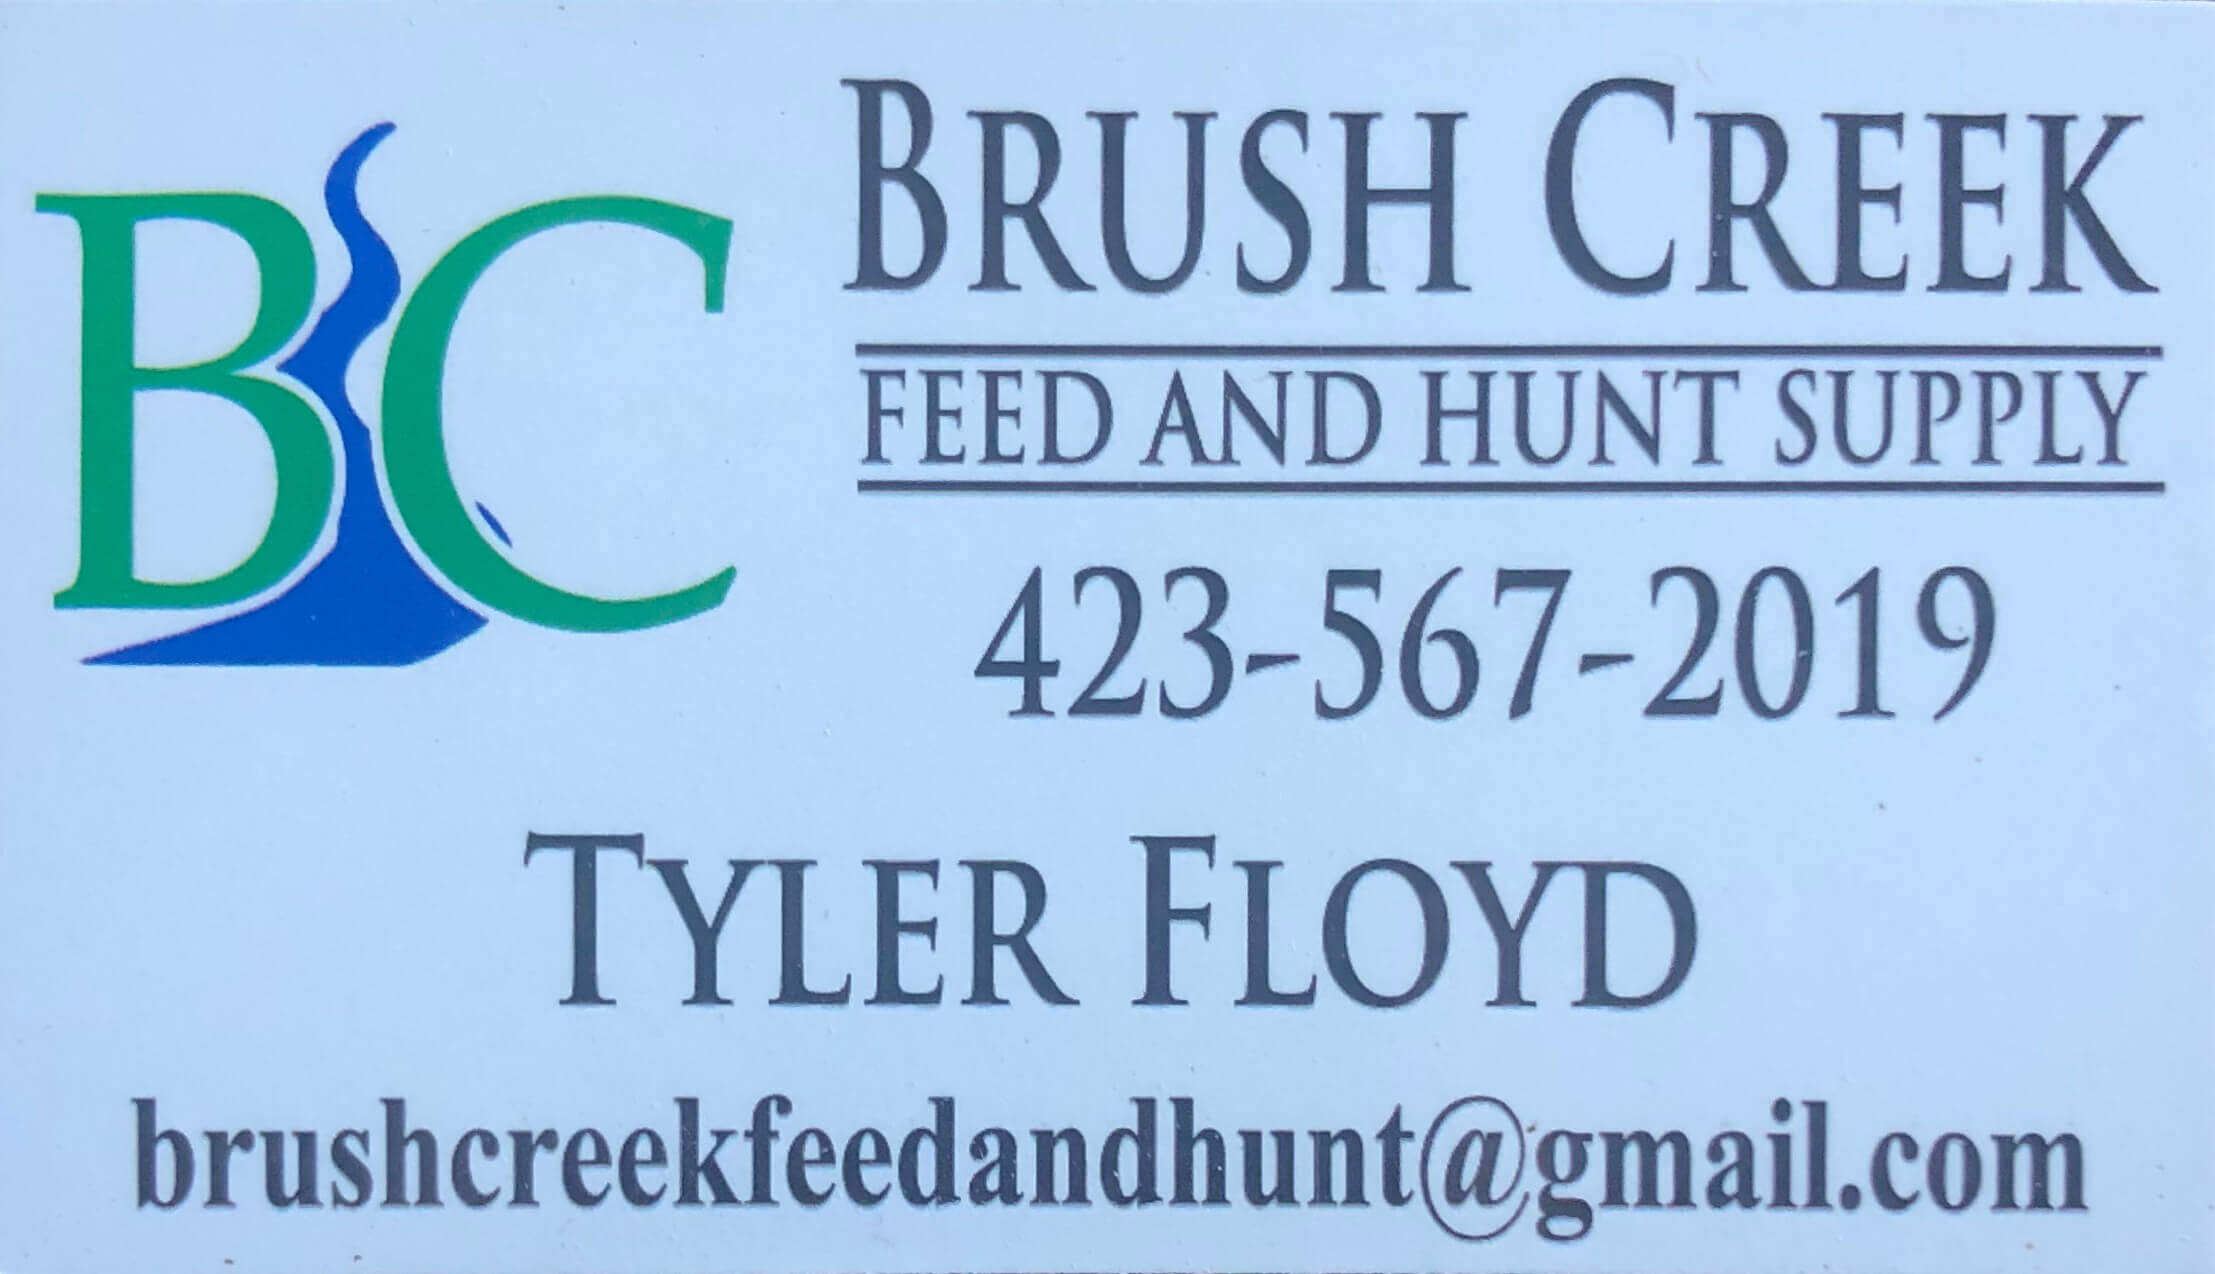 Brush Creek Feed and Hunt Supply